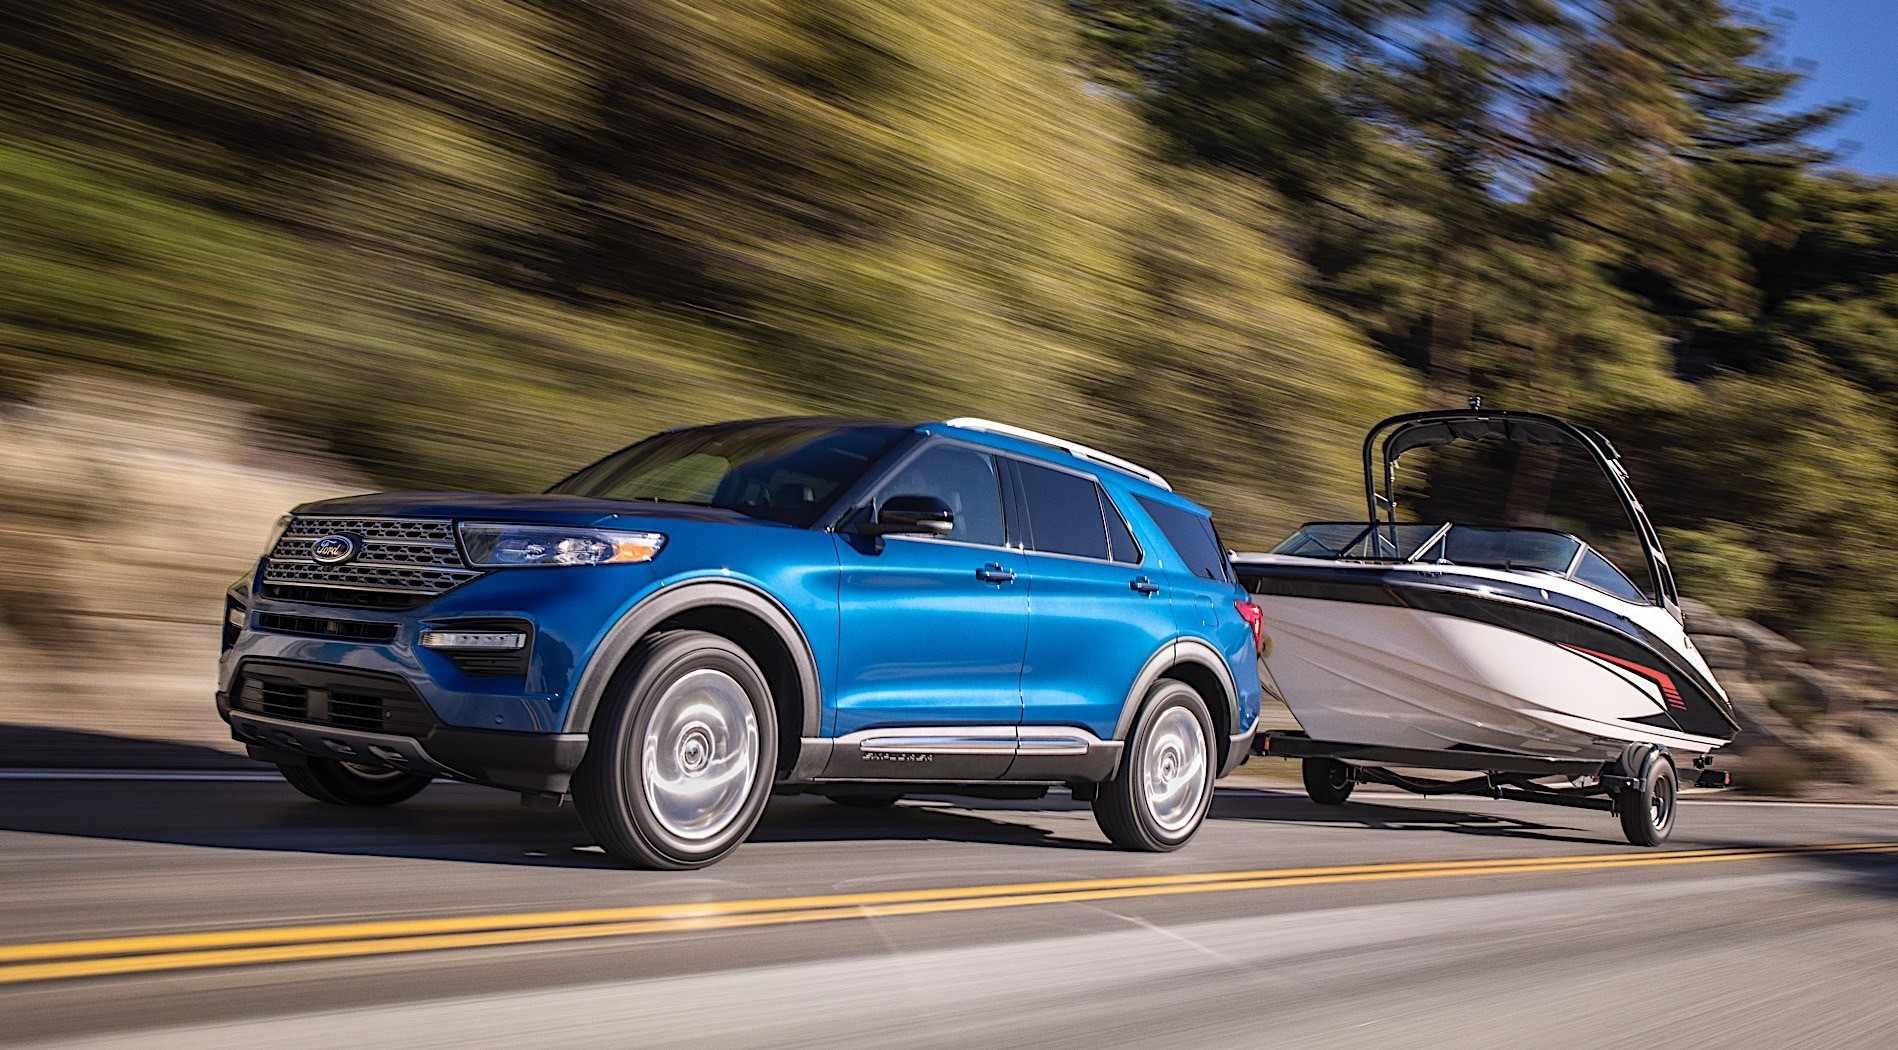 2020 Ford Explorer Hybrid Promises 500 Miles of Range - autoevolution